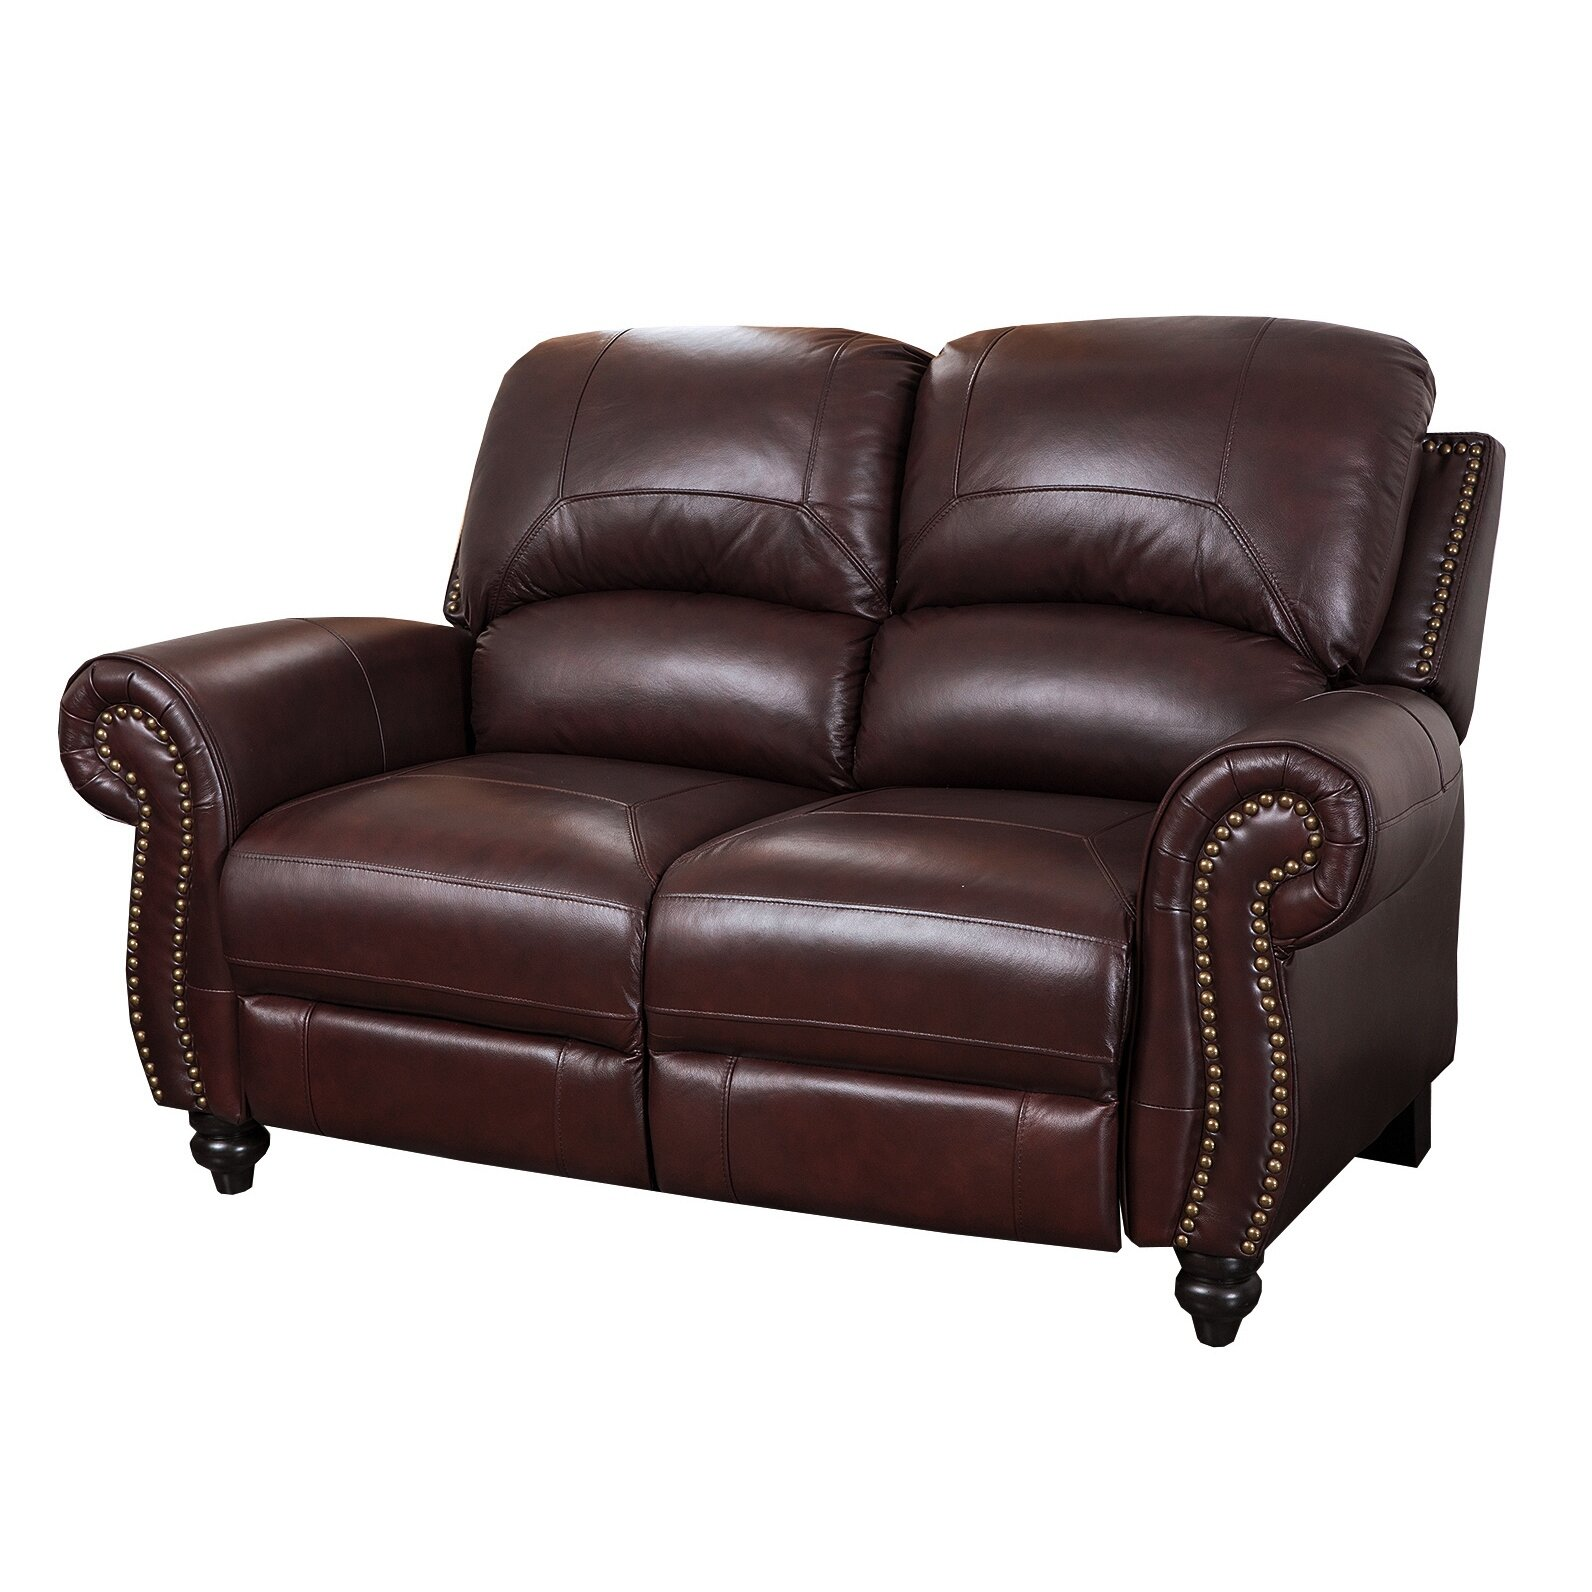 Darby home co kahle leather reclining loveseat reviews wayfair Leather loveseat recliners